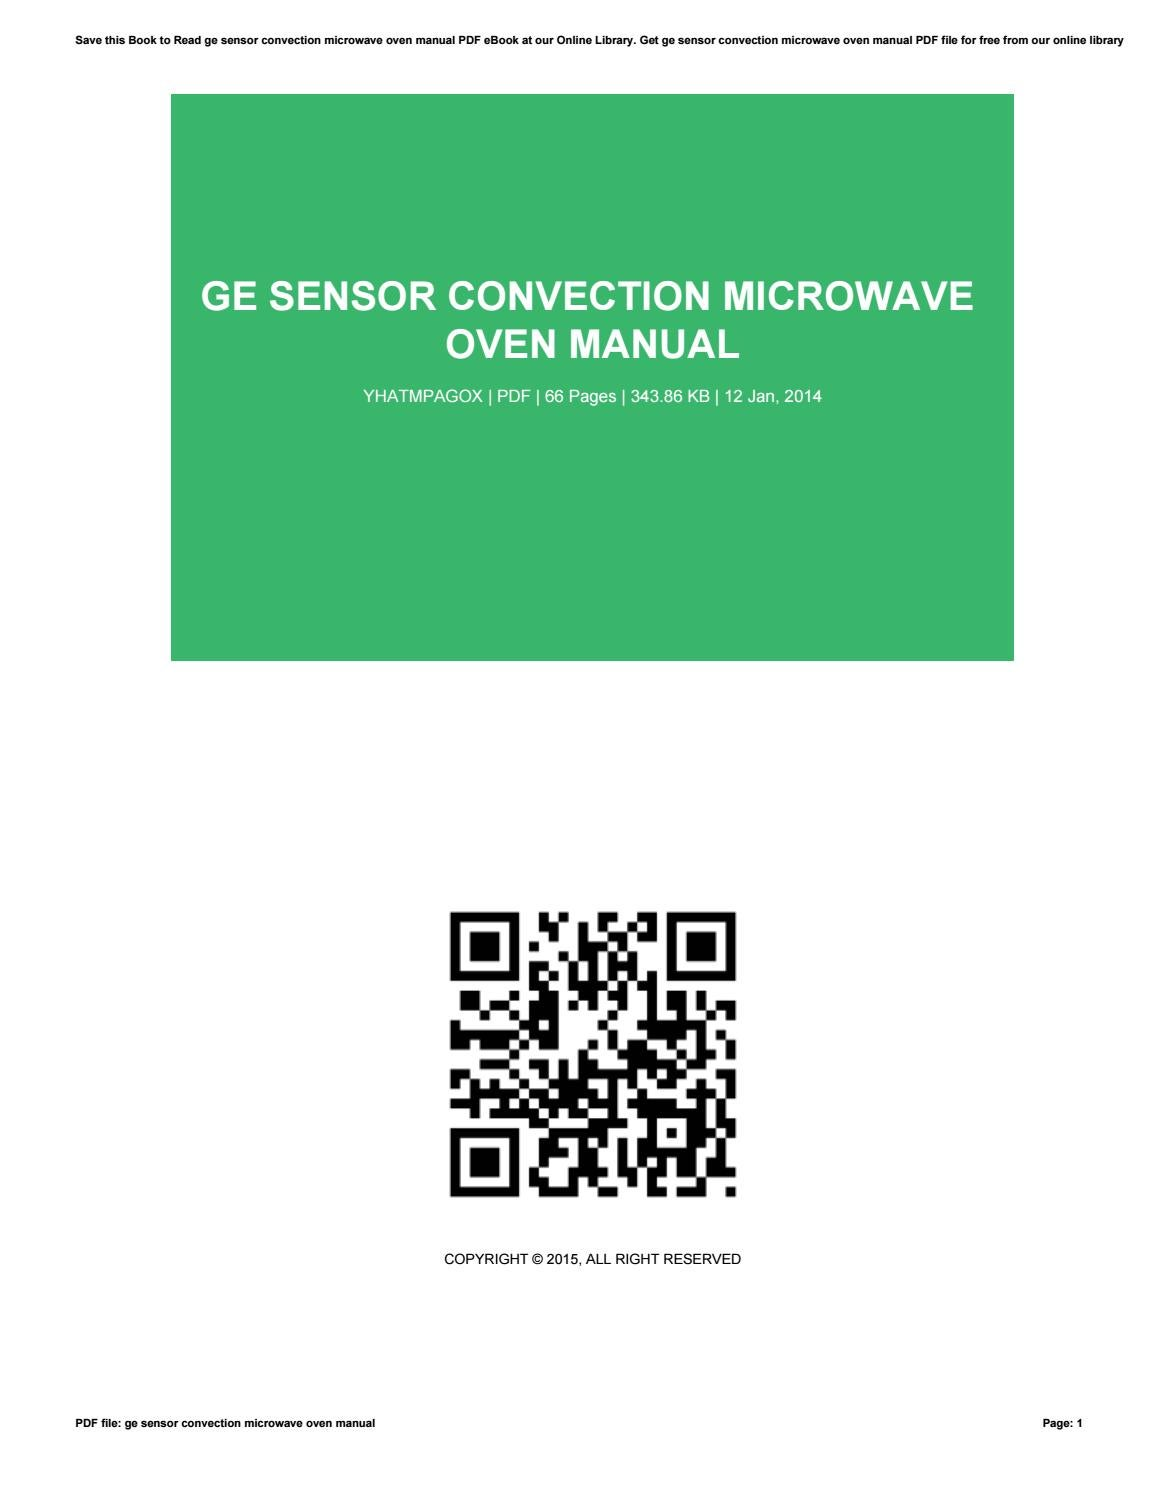 Ge Sensor Convection Microwave Oven Manual Bestmicrowave